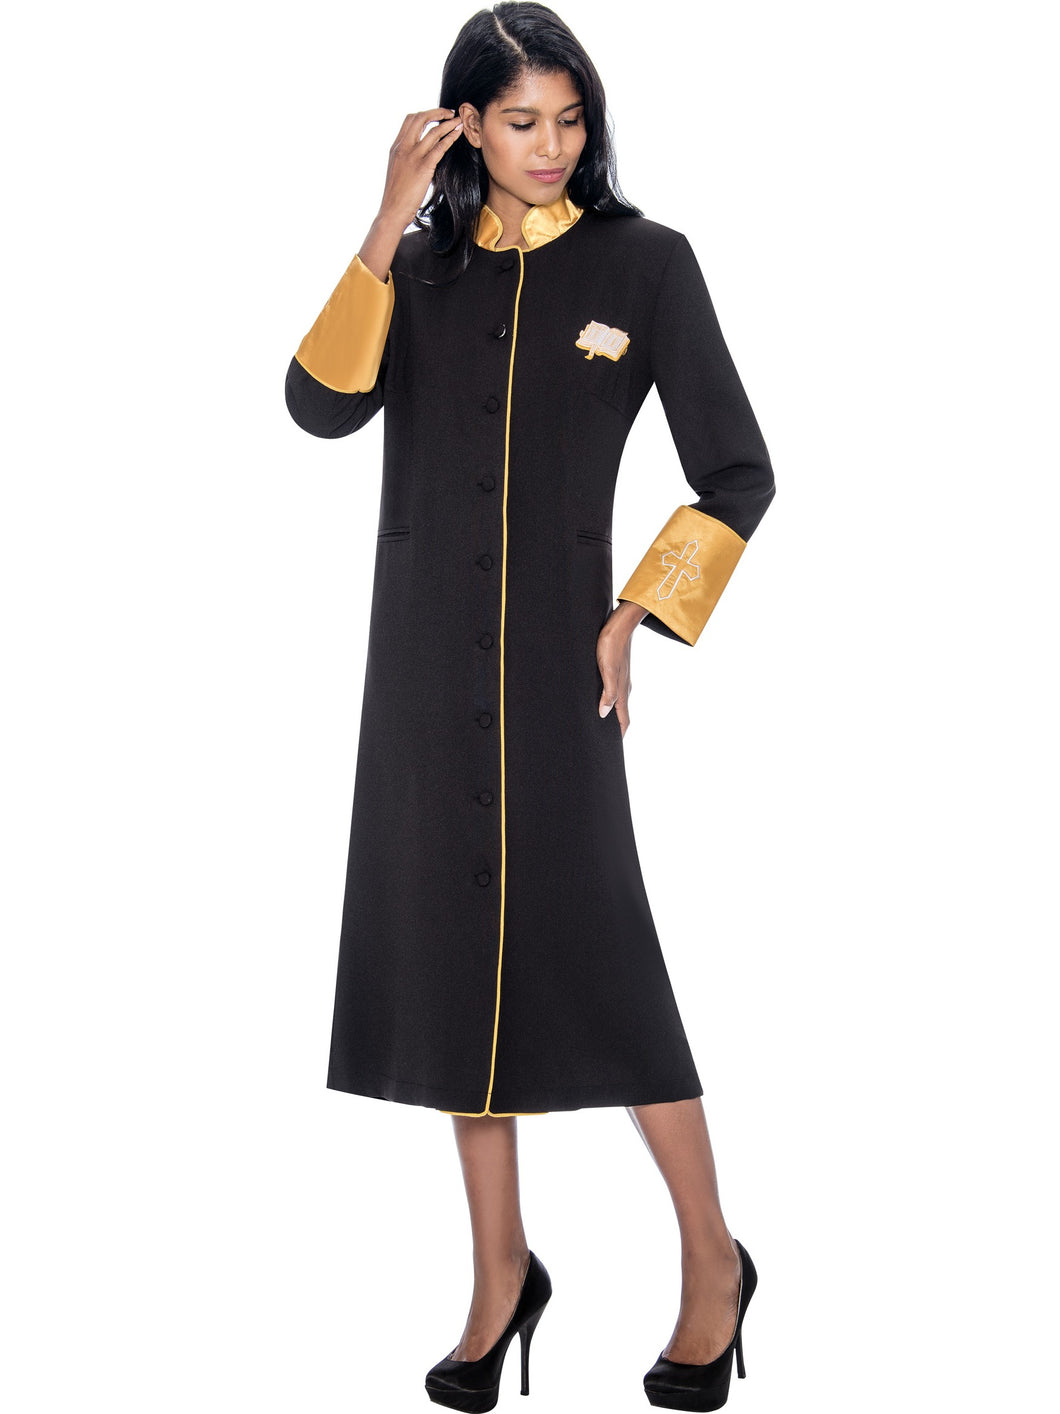 Black Church Robe for Clergy, Pastors, Priests, Choir, Groups